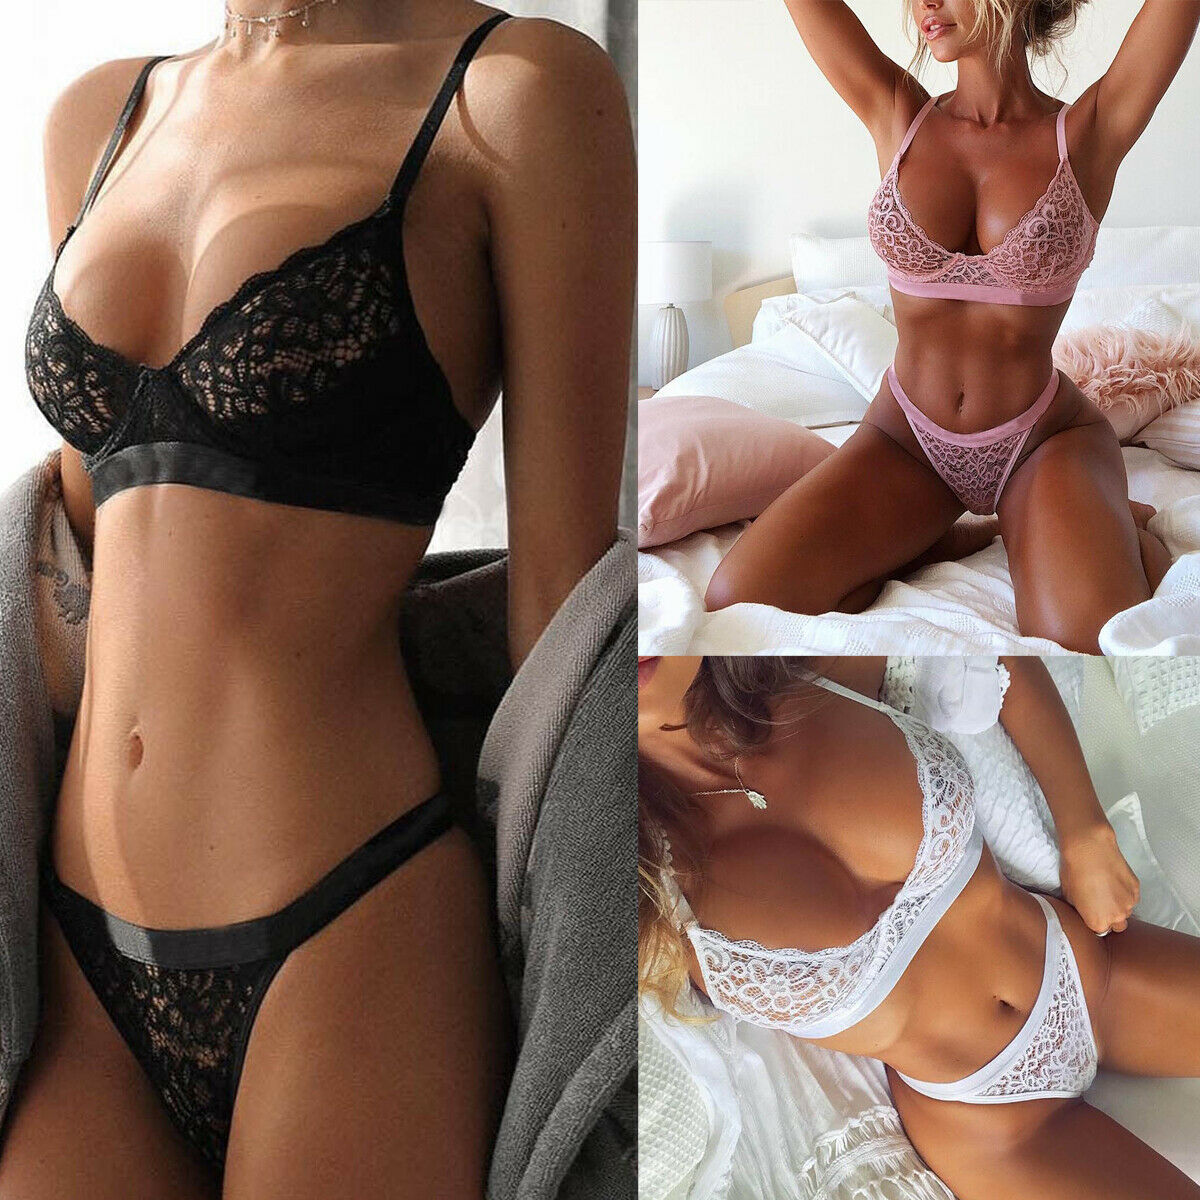 Hot <font><b>Sexy</b></font> <font><b>Women's</b></font> <font><b>Lace</b></font> Bandage <font><b>Lingerie</b></font> Solid Underwear G-string <font><b>Babydoll</b></font> Sleepwear Push-up Bra Set image